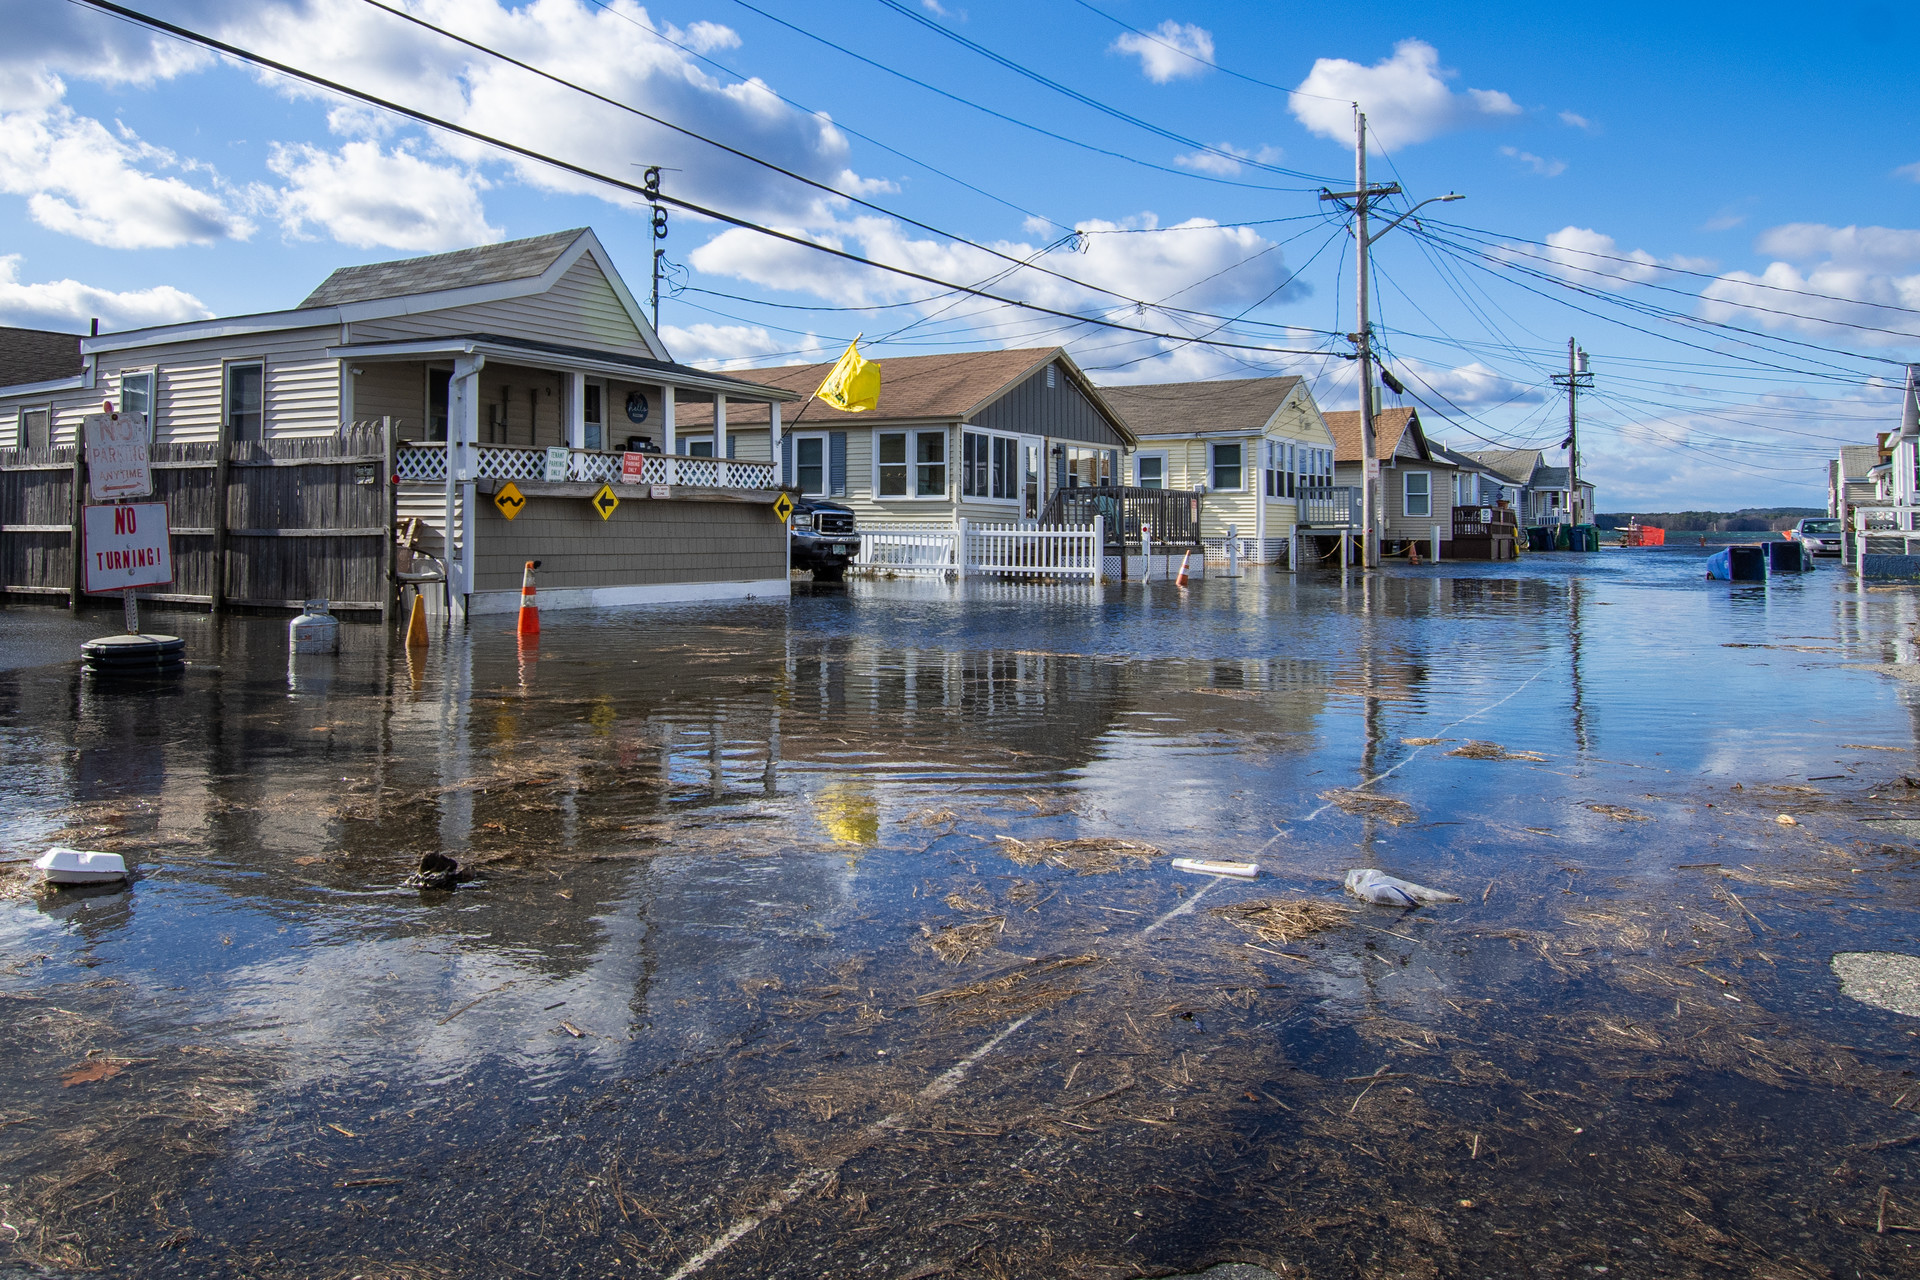 High Tide November 16, 2020 on the Marsh Side of Hampton Beach. Credit: Marie Sapienza